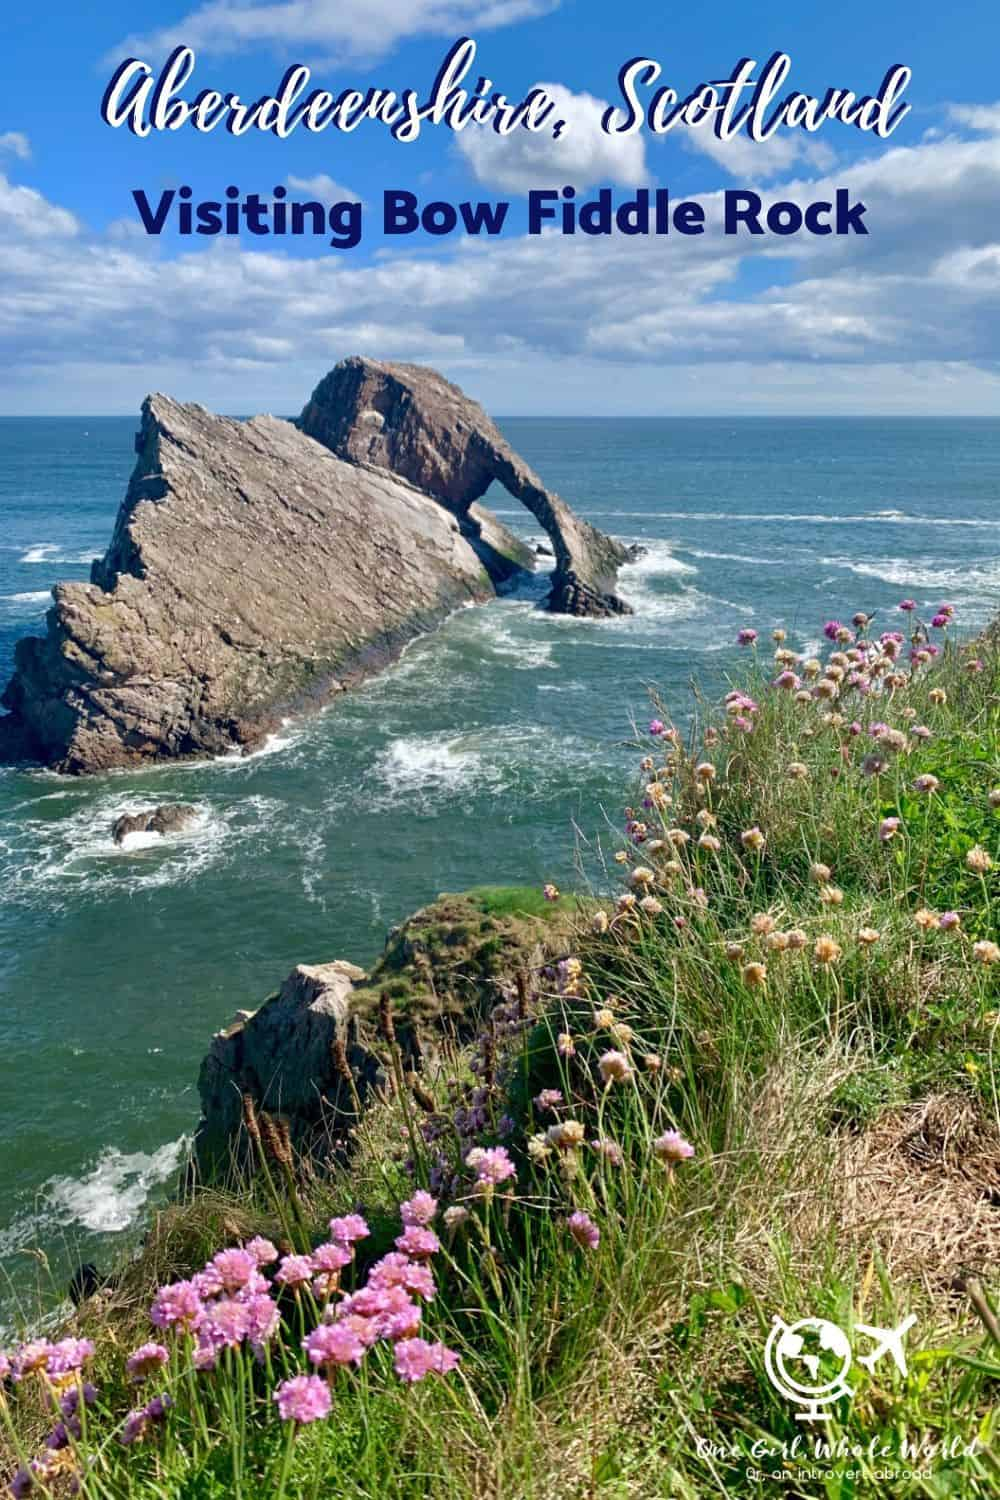 Visiting Bow Fiddle Rock in Aberdeenshire, Scotland | This beautiful rock formation on the gorgeous Scottish coast is a must if you're visiting the Aberdeenshire (or Speyside, Moray, etc.) area. How to plan your visit! #scotland #ukroadtrip #aberdeen